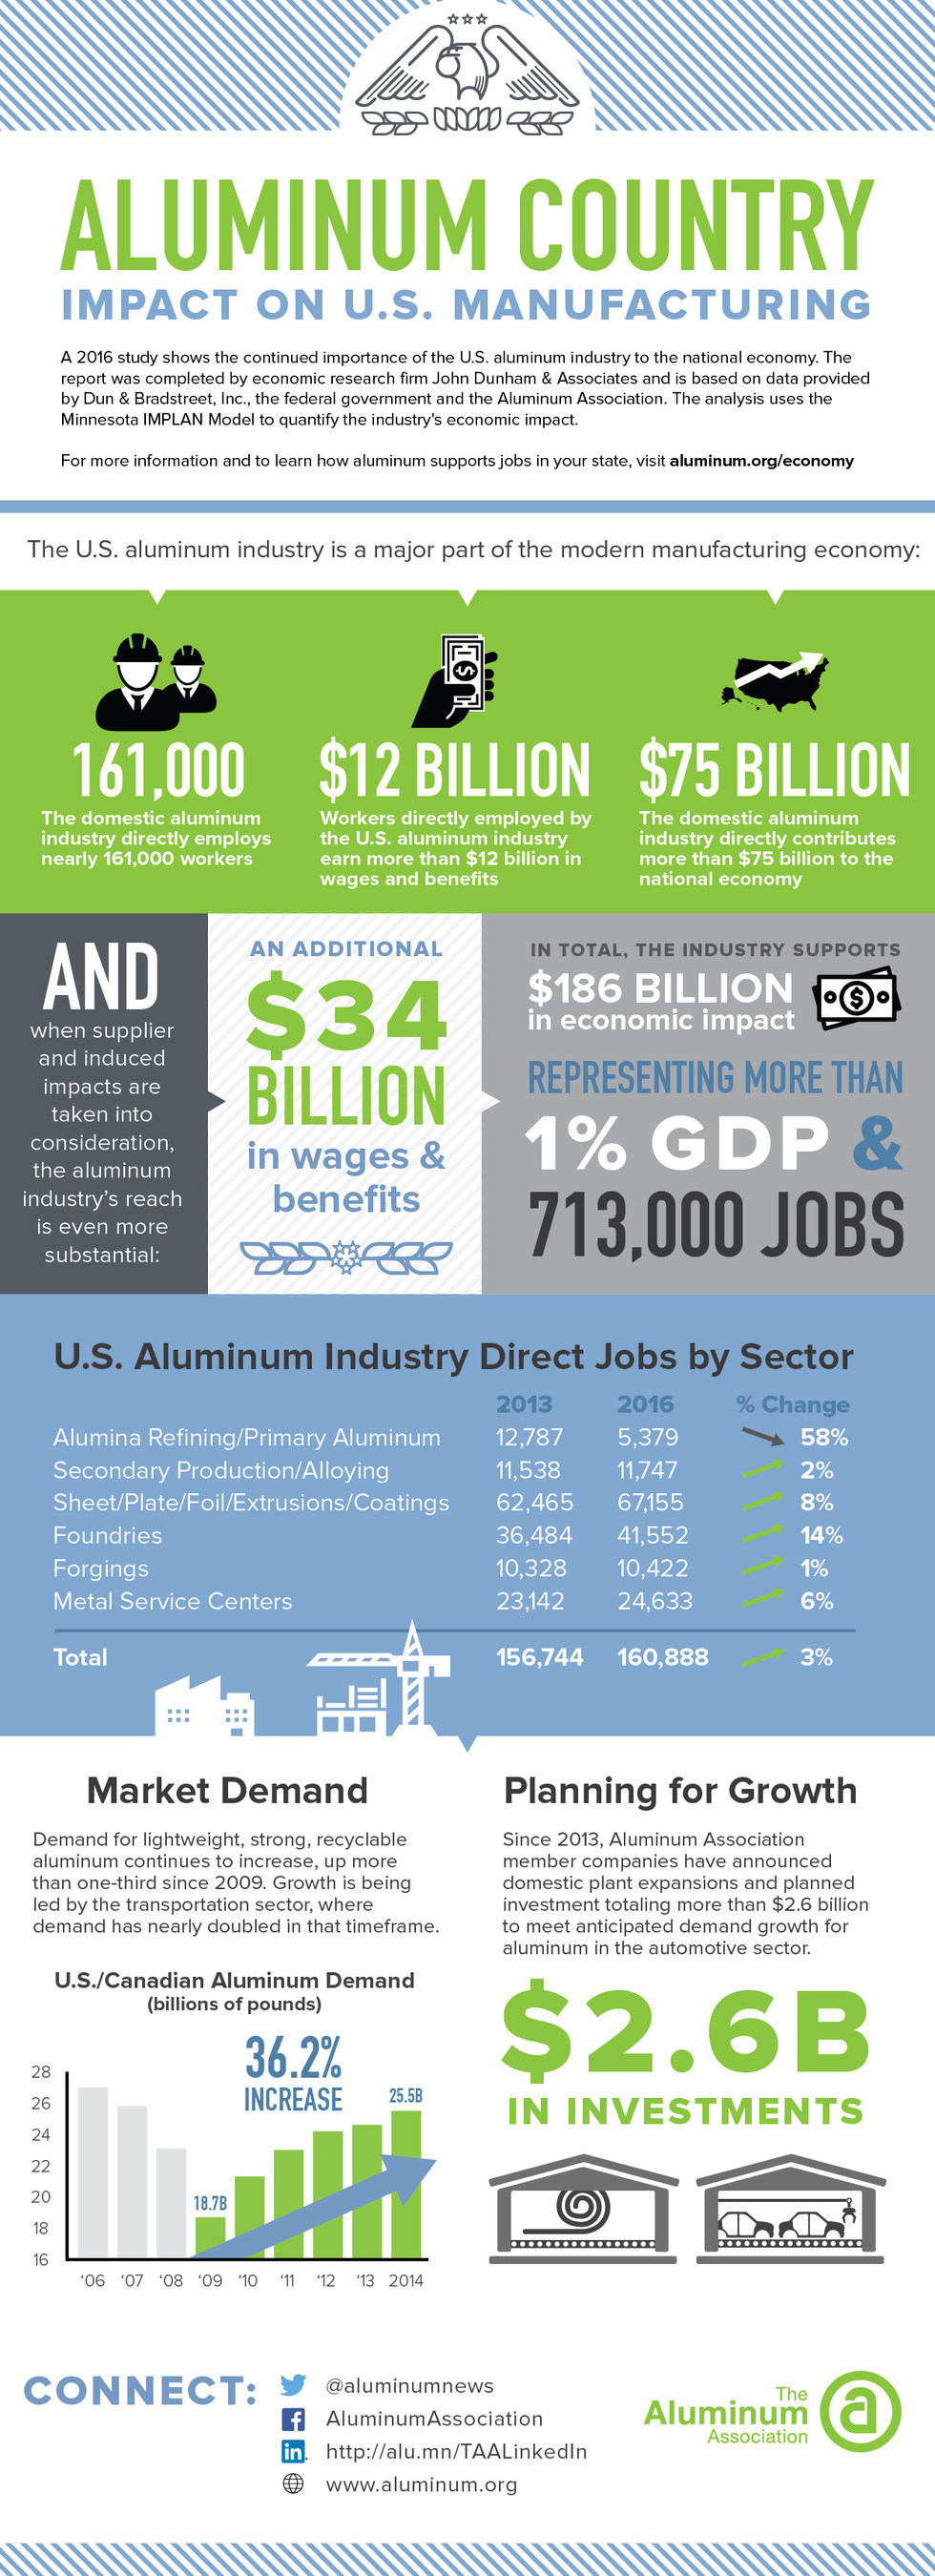 The U.S. aluminum industry is a vital part of the American manufacturing base directly employing nearly 161,000 workers and contributing more than $75 billion to the national economy. When supplier and induced impacts are taken into consideration, the industry is responsible for nearly 713,000 jobs and $186 billion in economic impact - more than 1 percent of national GDP.